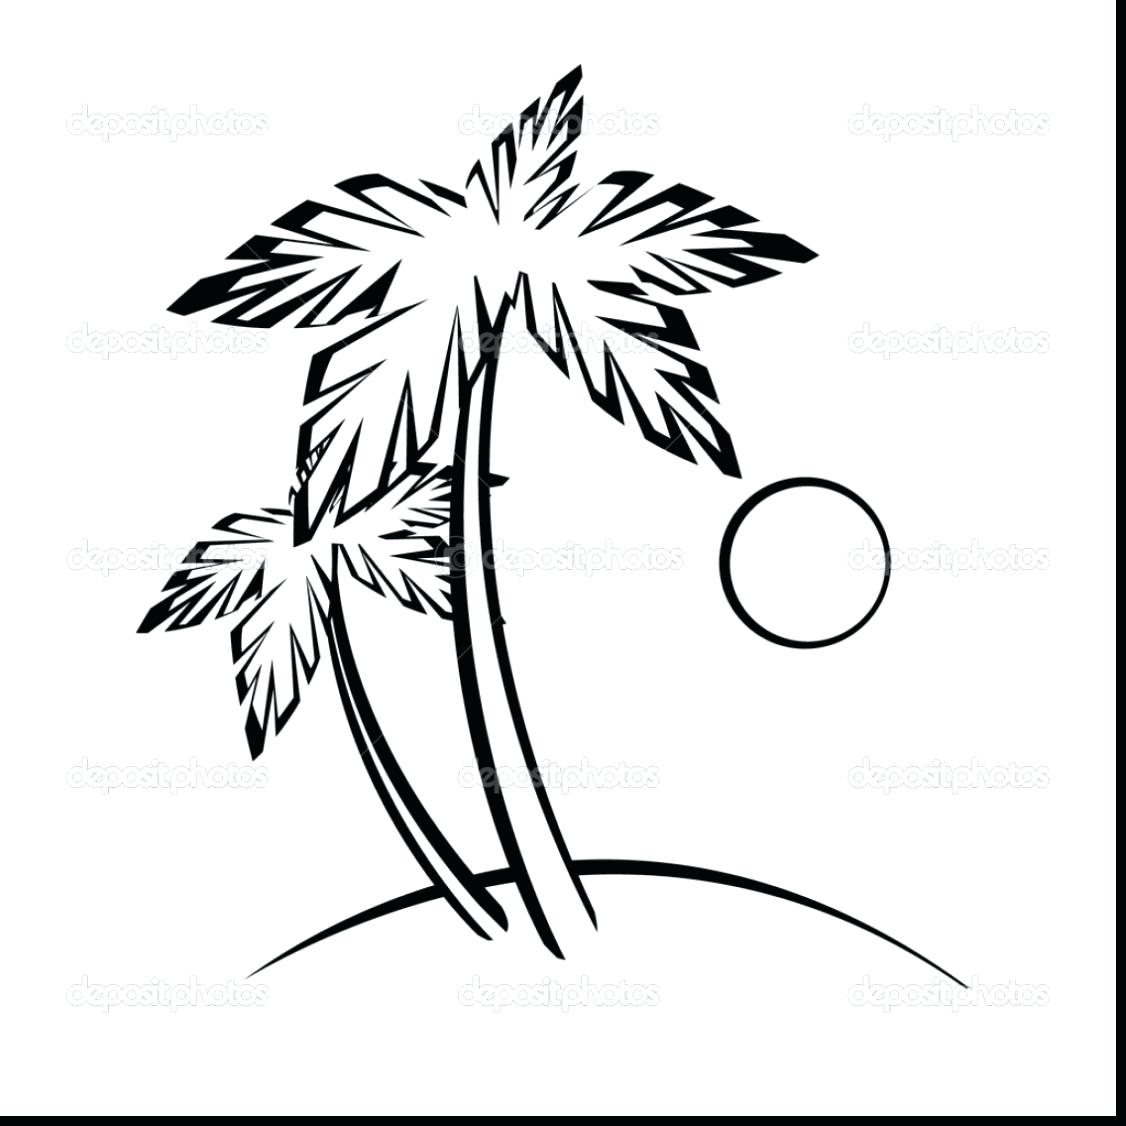 1126x1126 Coloring Palm Tree Coloring Pages